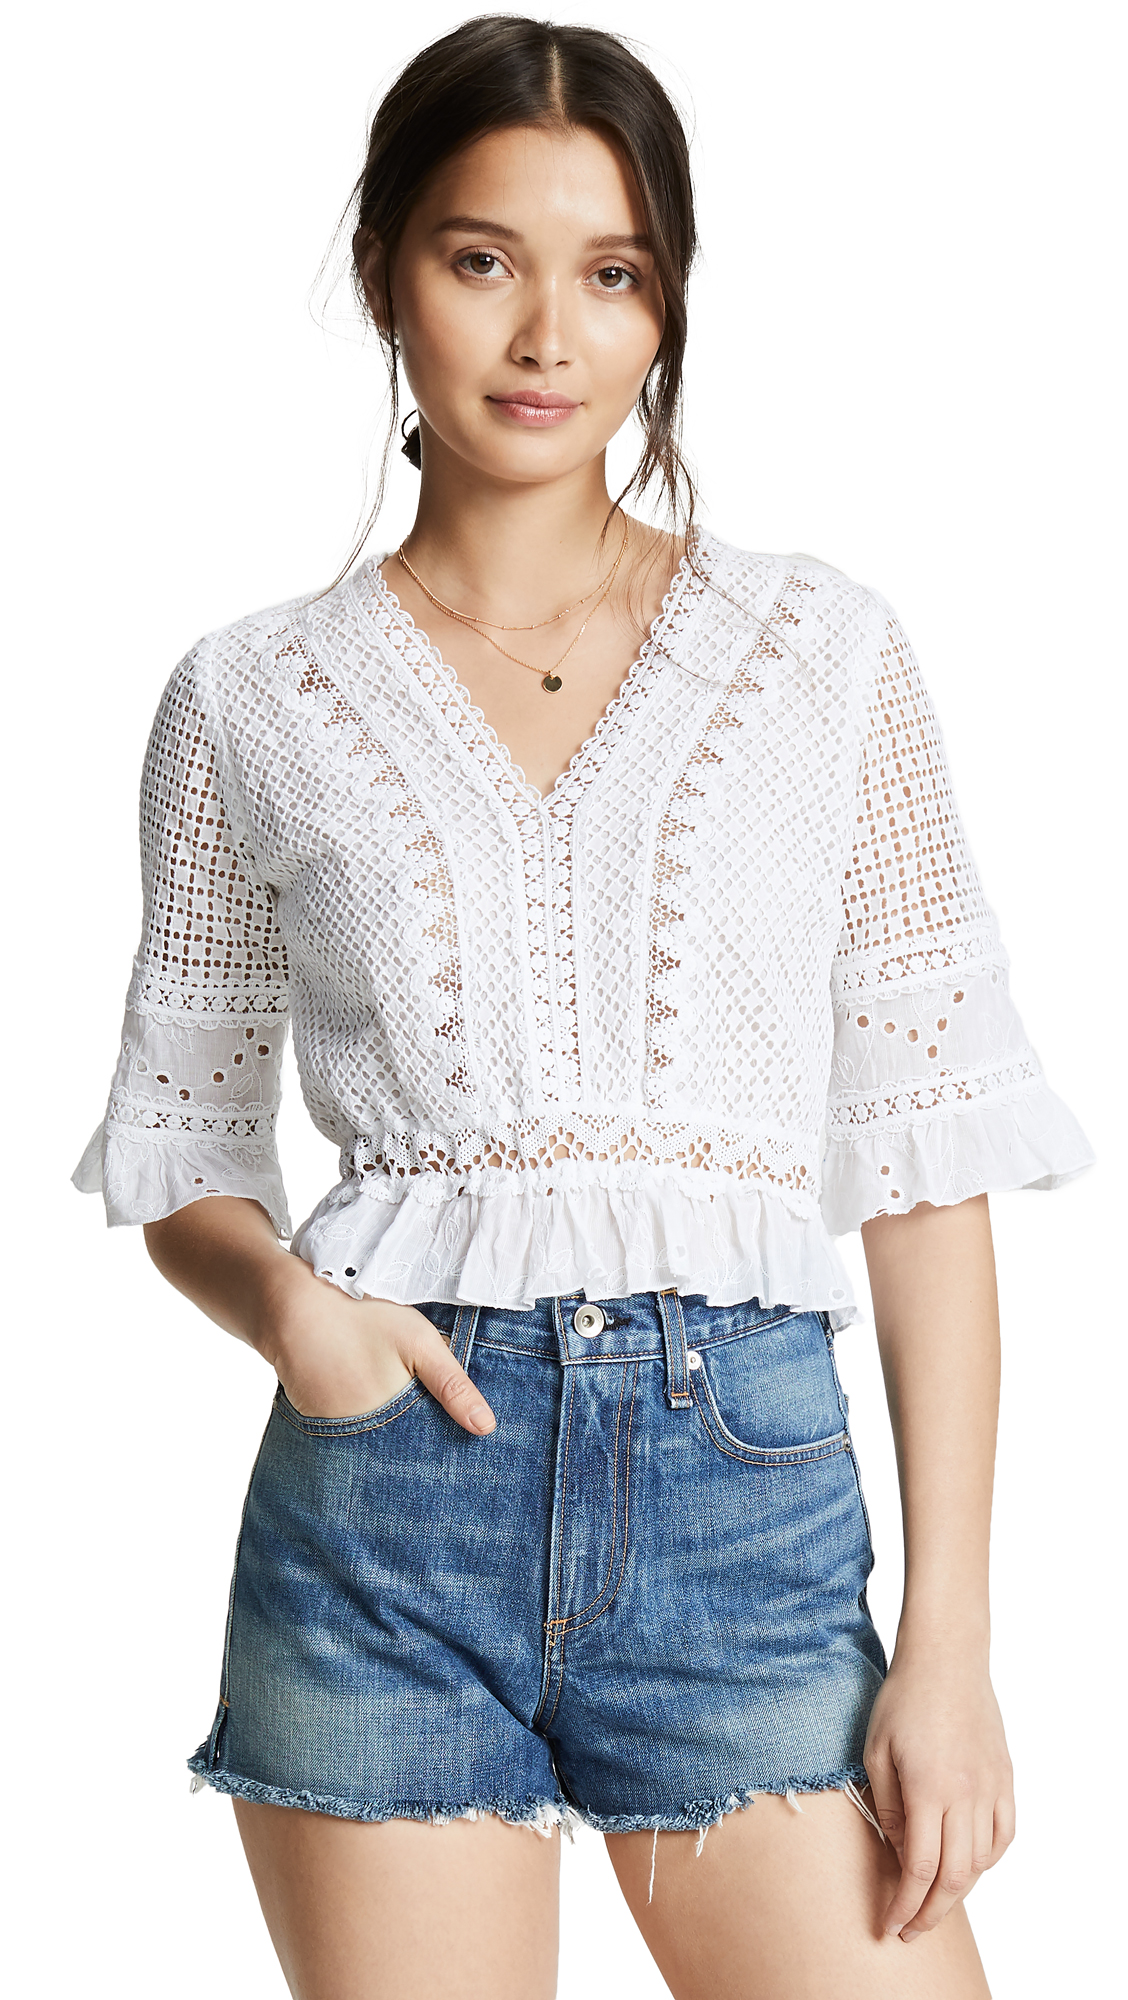 TEMPTATION POSITANO Crop 3/4 Sleeve Top With Lining in White